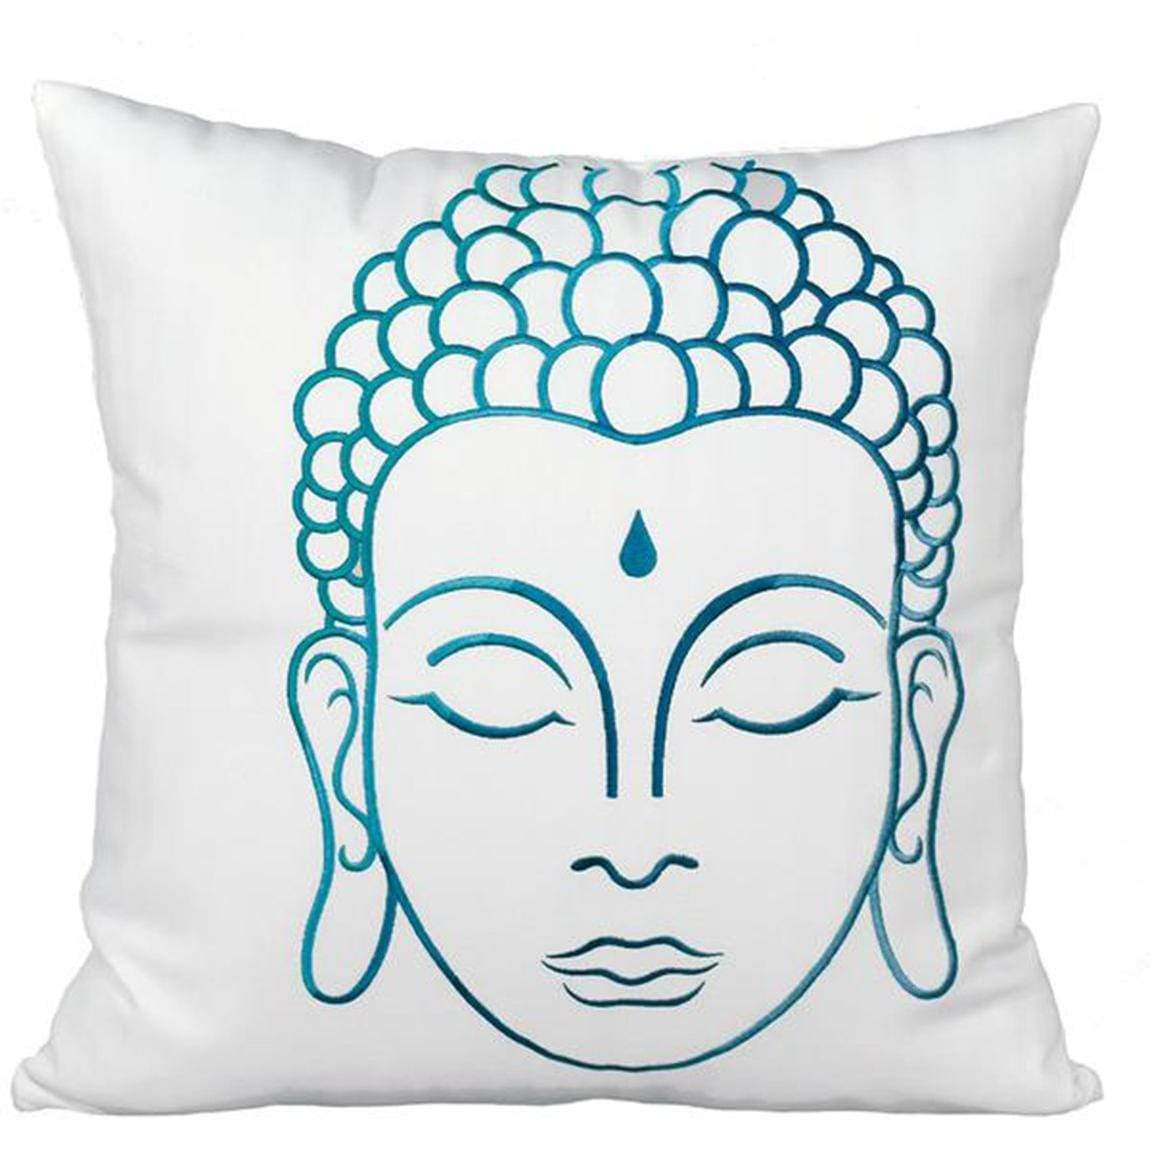 Buddha Throw Pillow - White & Teal